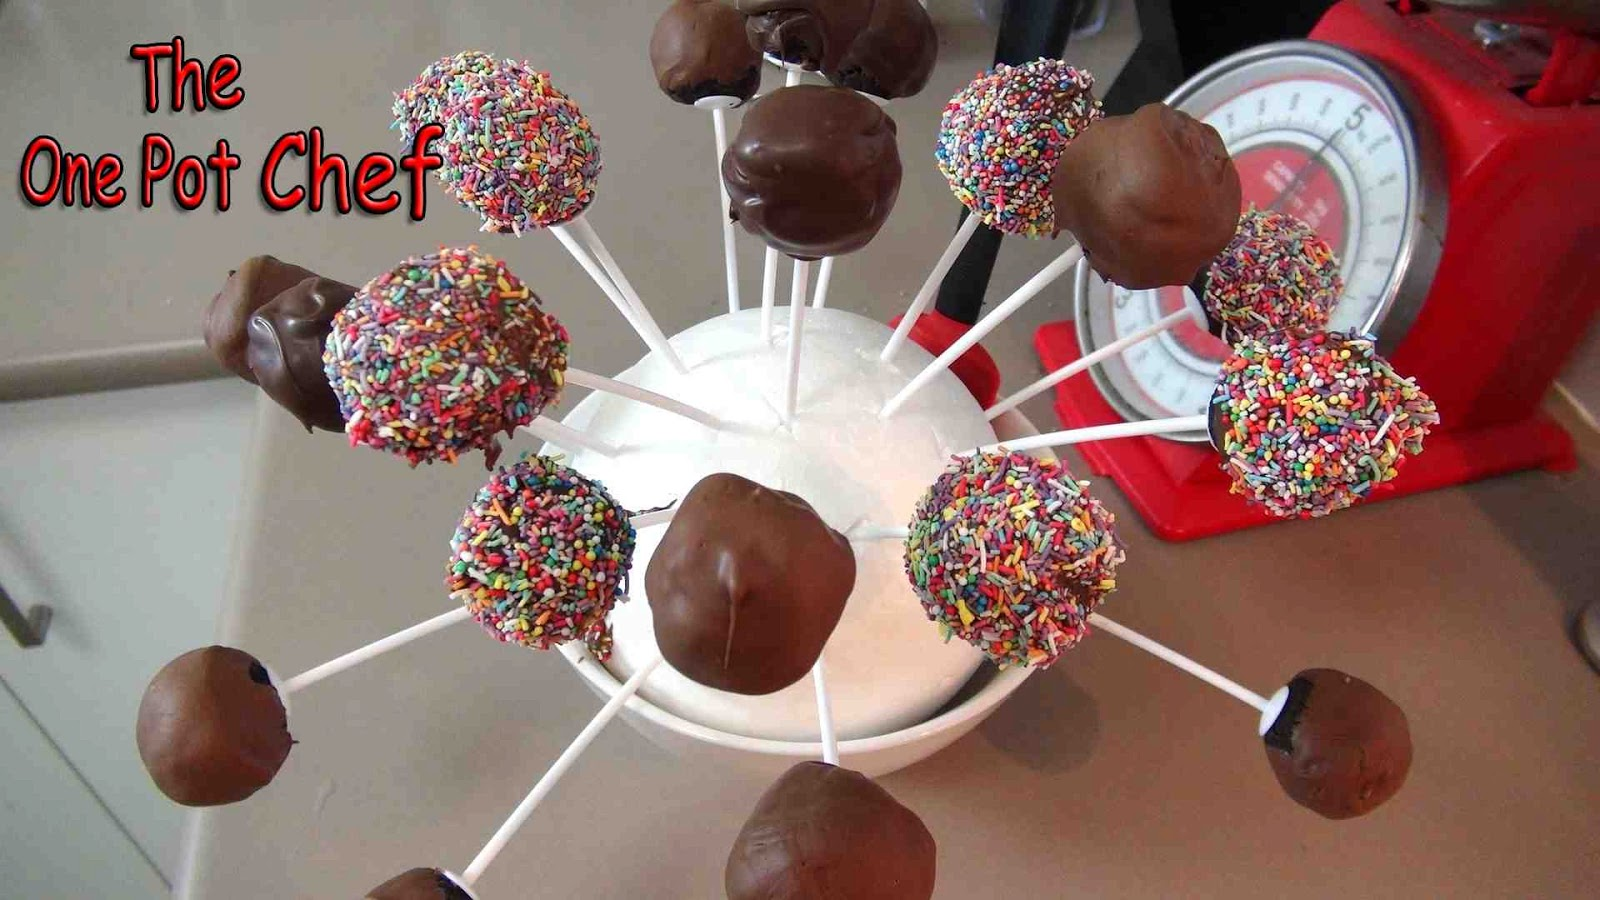 The One Pot Chef Show: Basic Cake Pops - RECIPE